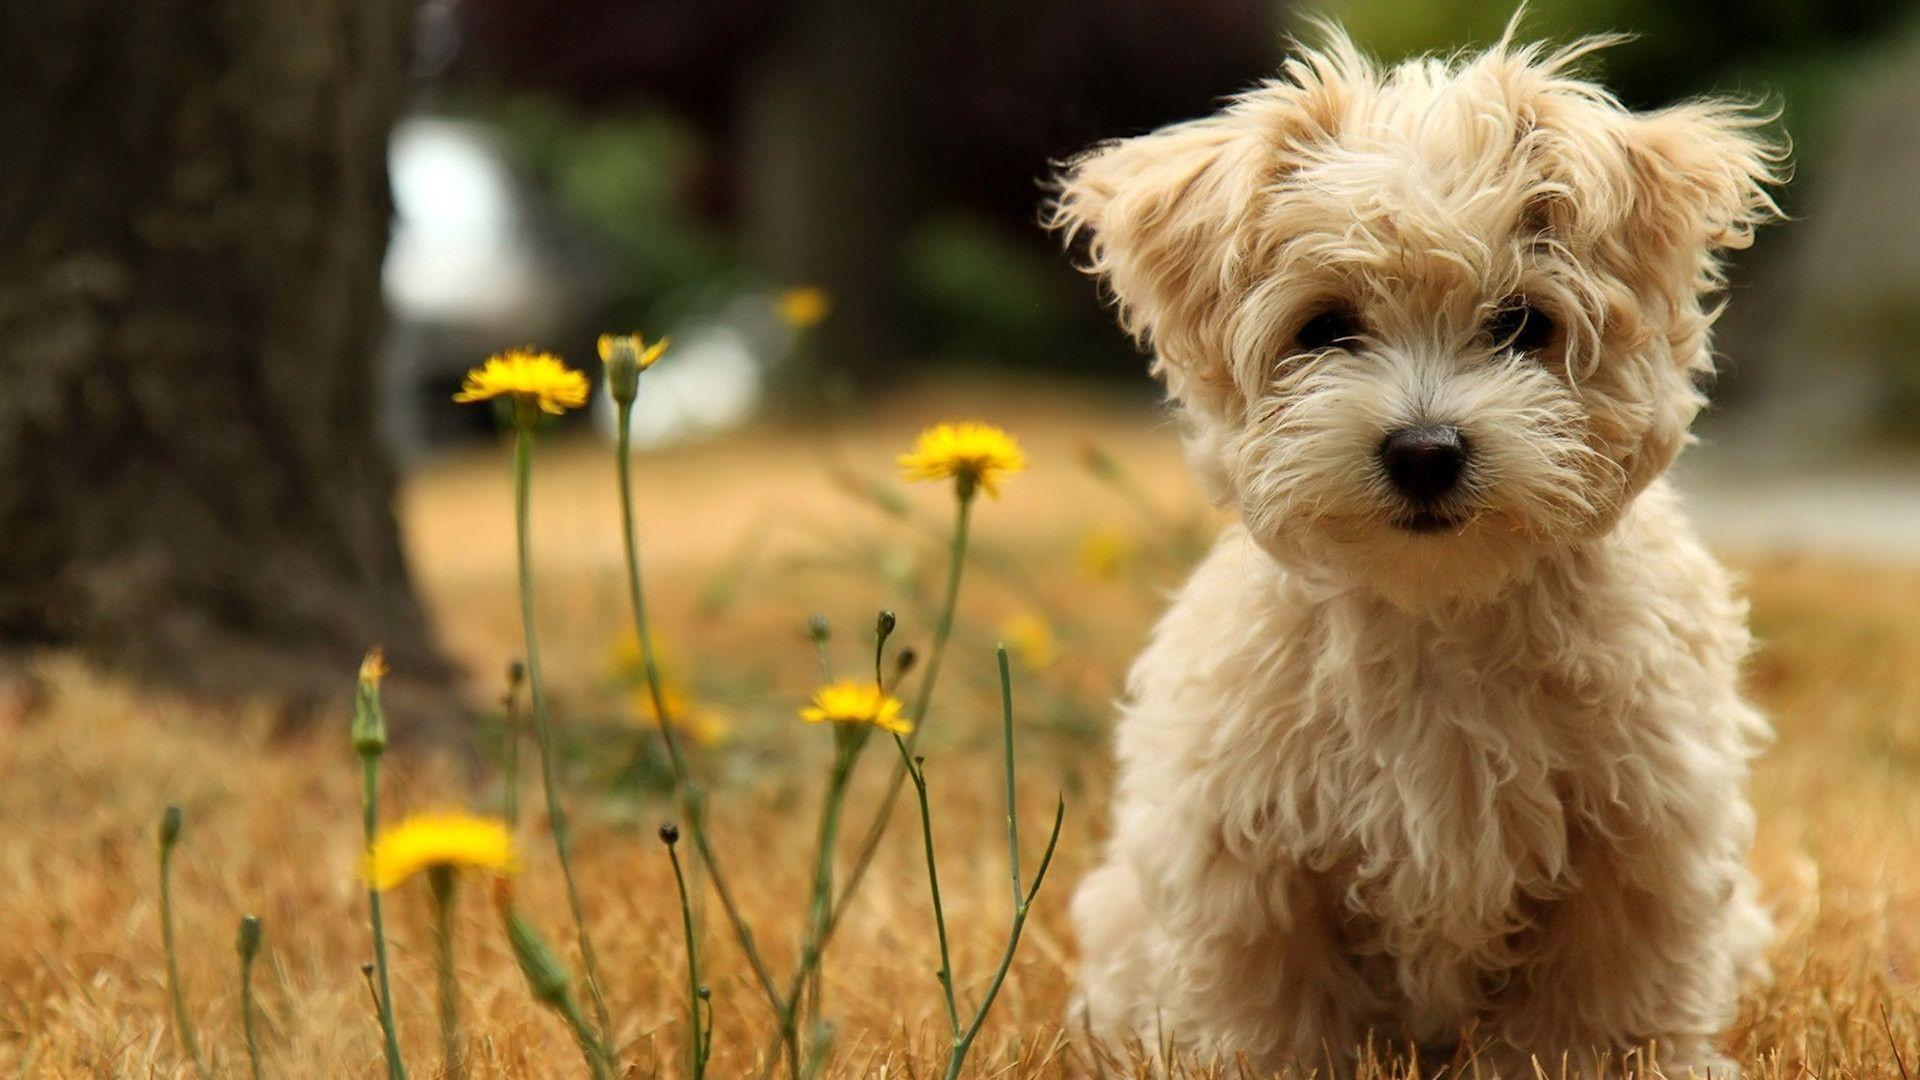 Dog Wallpapers Wallpaper Cave